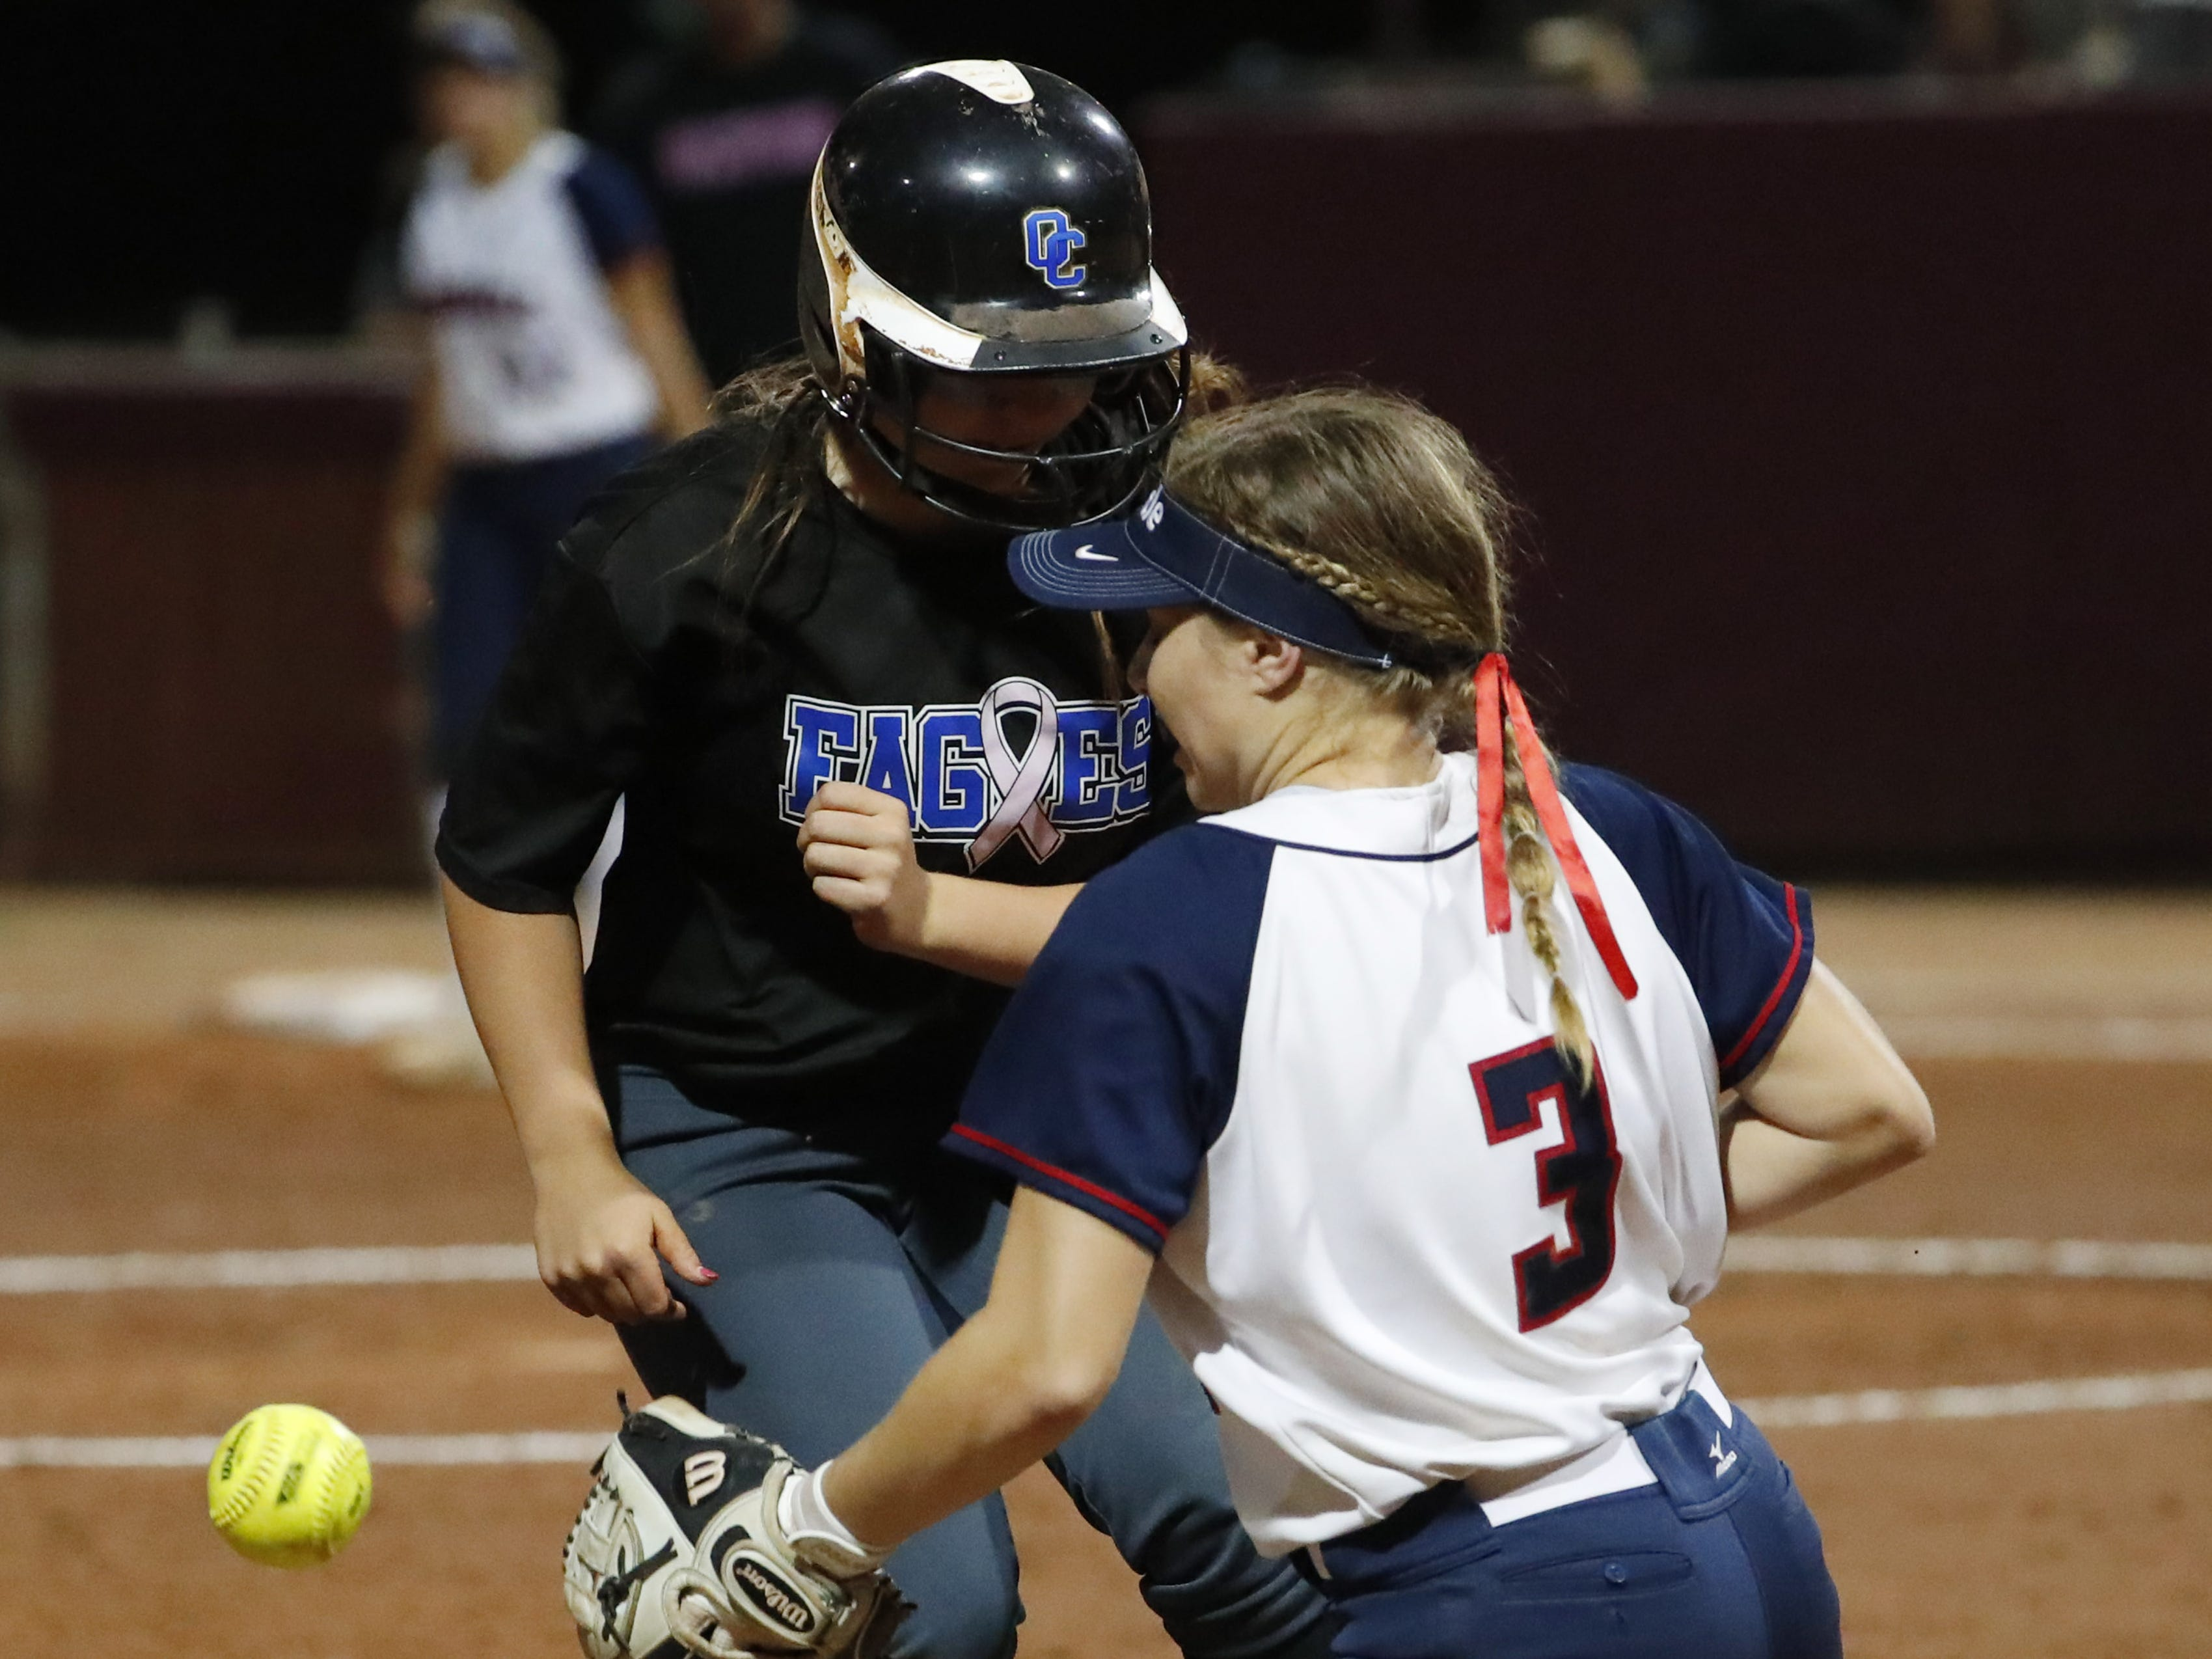 Sandra Day O'Connor's Lela Allen (15) slides in safely at third base as the ball gets away from Pinnacle third baseman Grace Rudolph (3) during the 6A State Softball Championship in Tempe, Ariz. May 13, 2019.